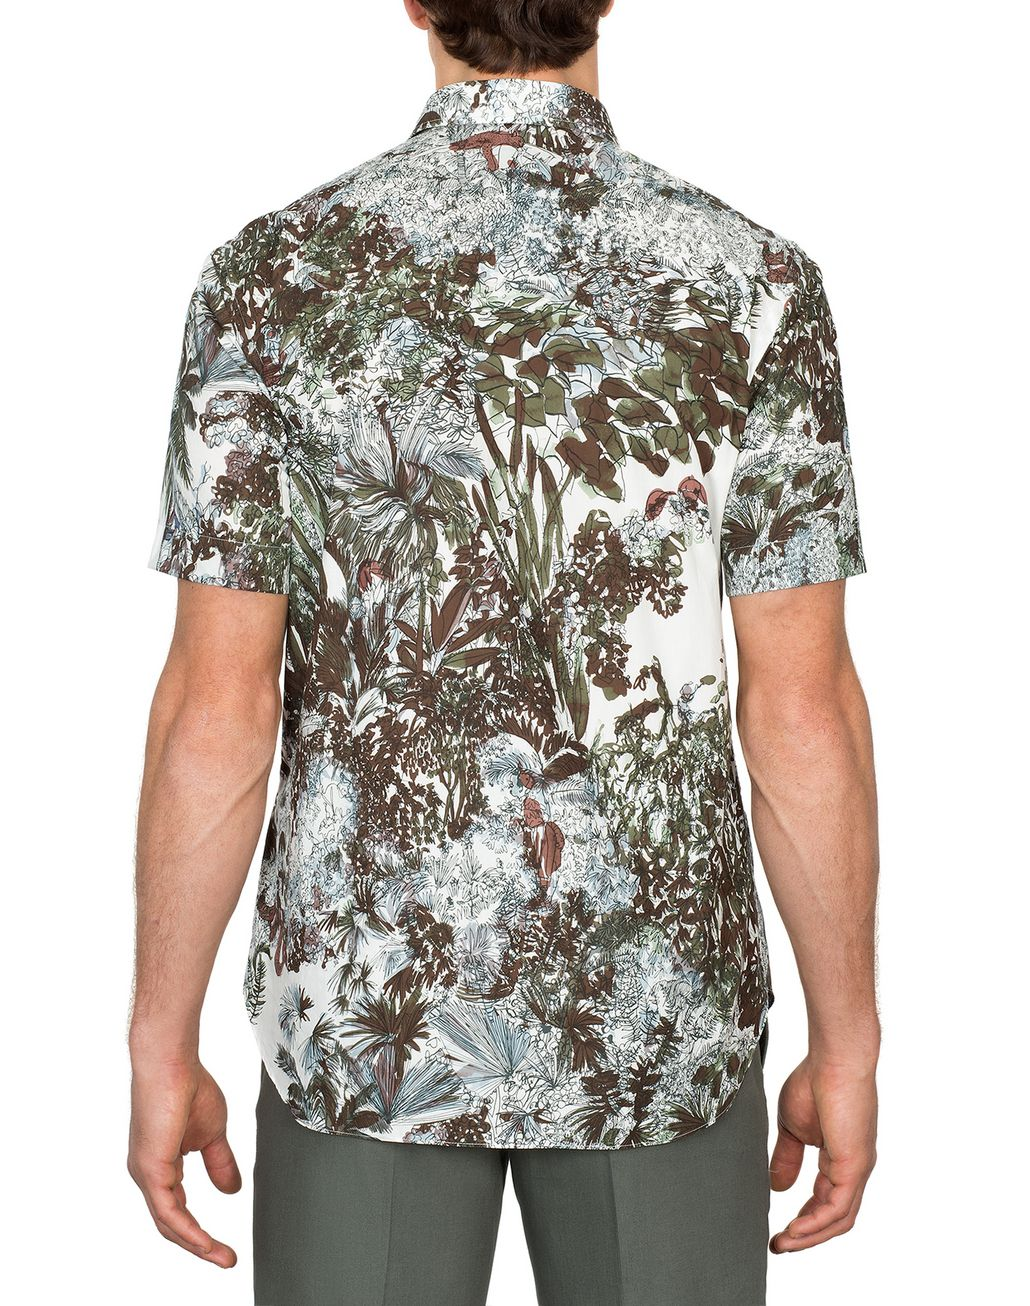 BRIONI Short-Sleeve Printed Shirt Leisure shirt [*** pickupInStoreShippingNotGuaranteed_info ***] d